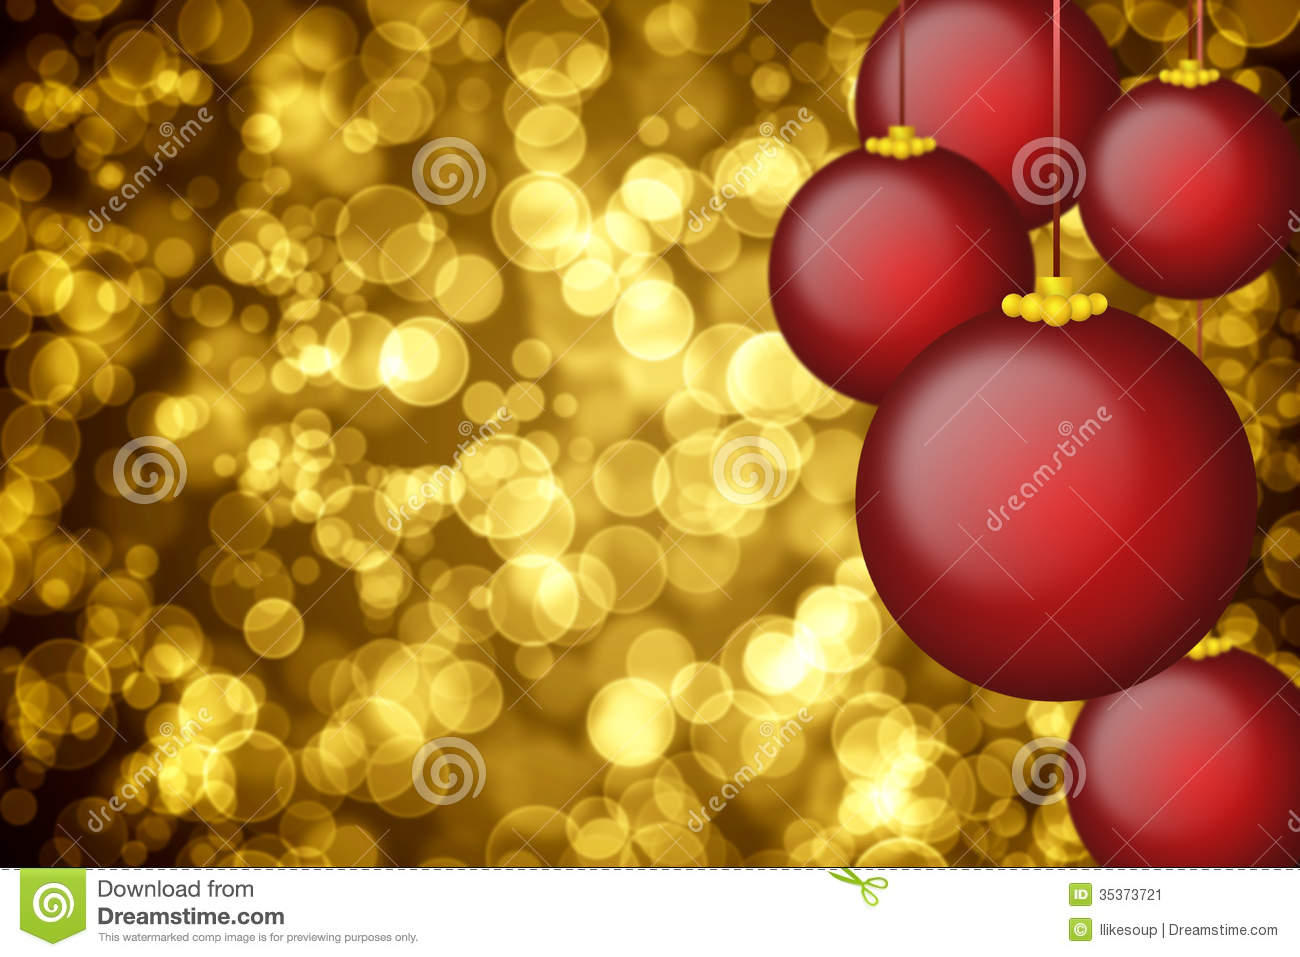 Christmas dress ornaments - Christmas Ornaments Background Golden Holiday Background With